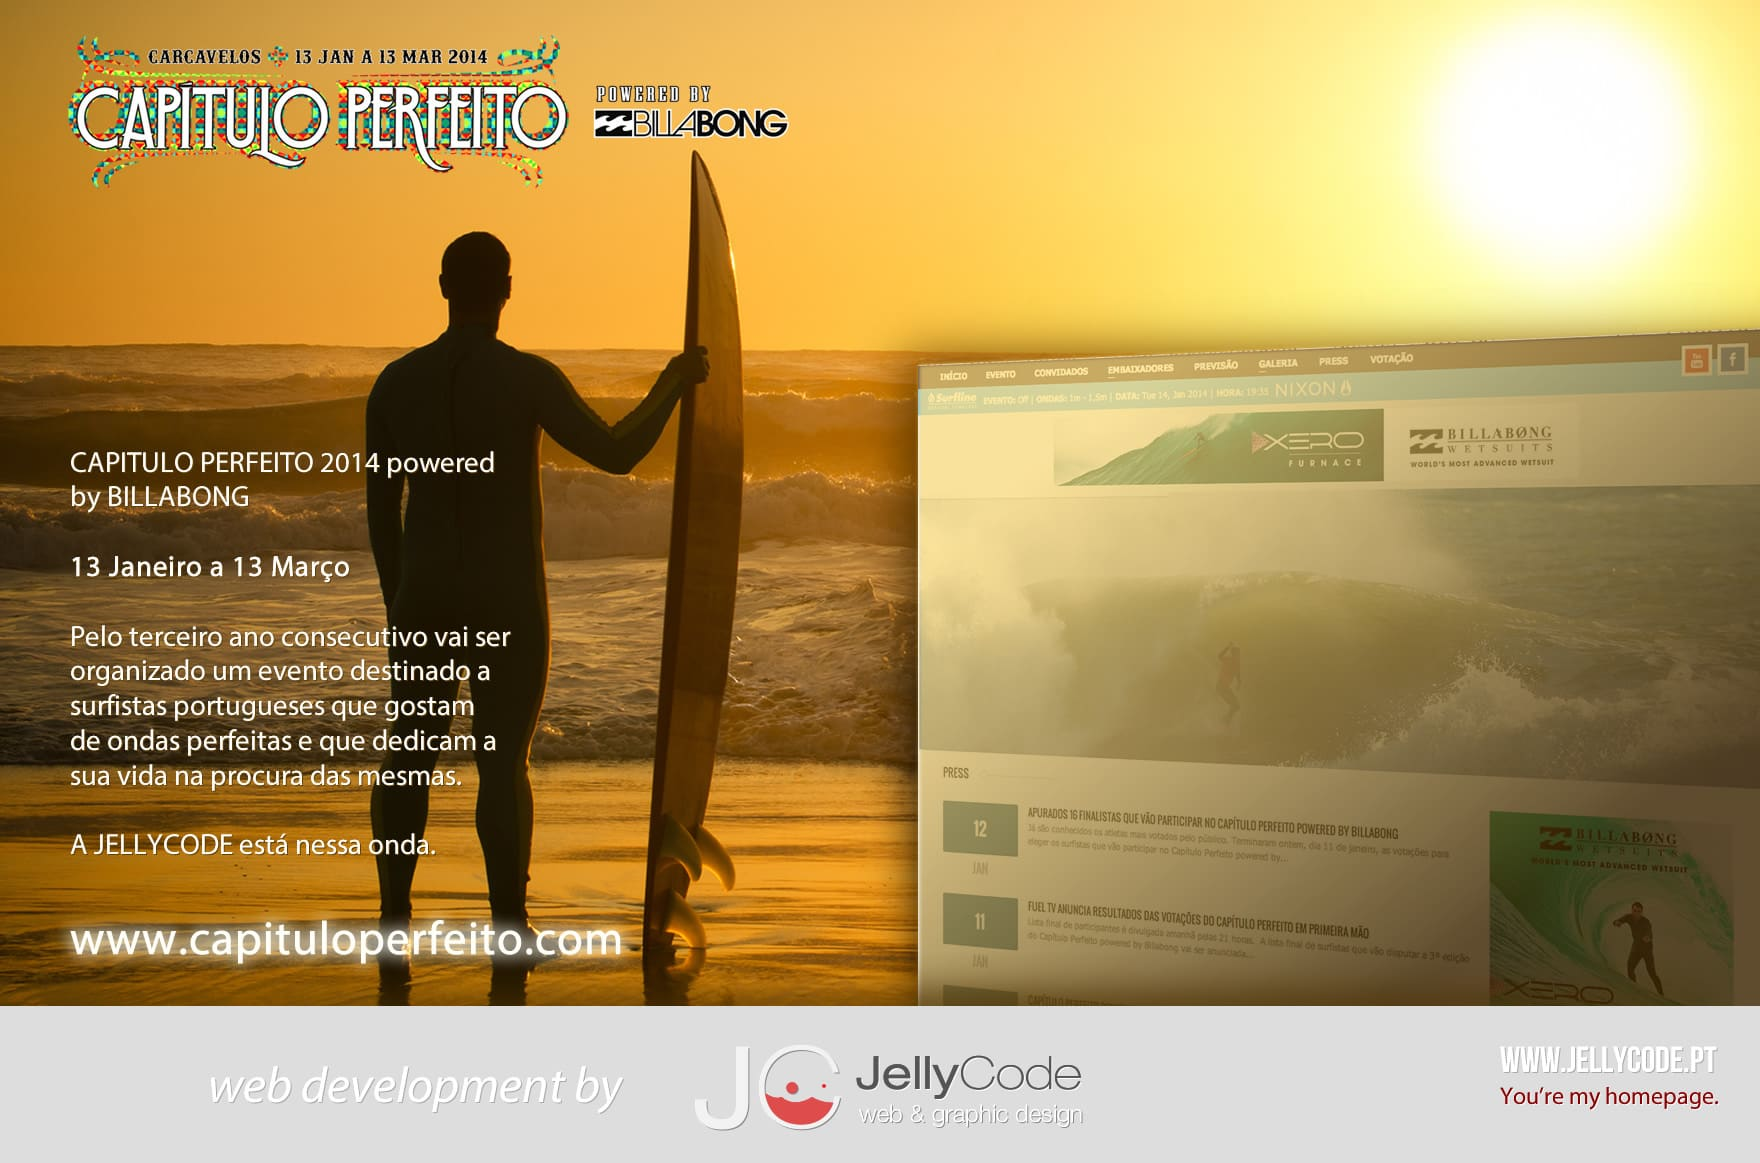 CAPITULOPERFEITO website powered by JELLYCODE